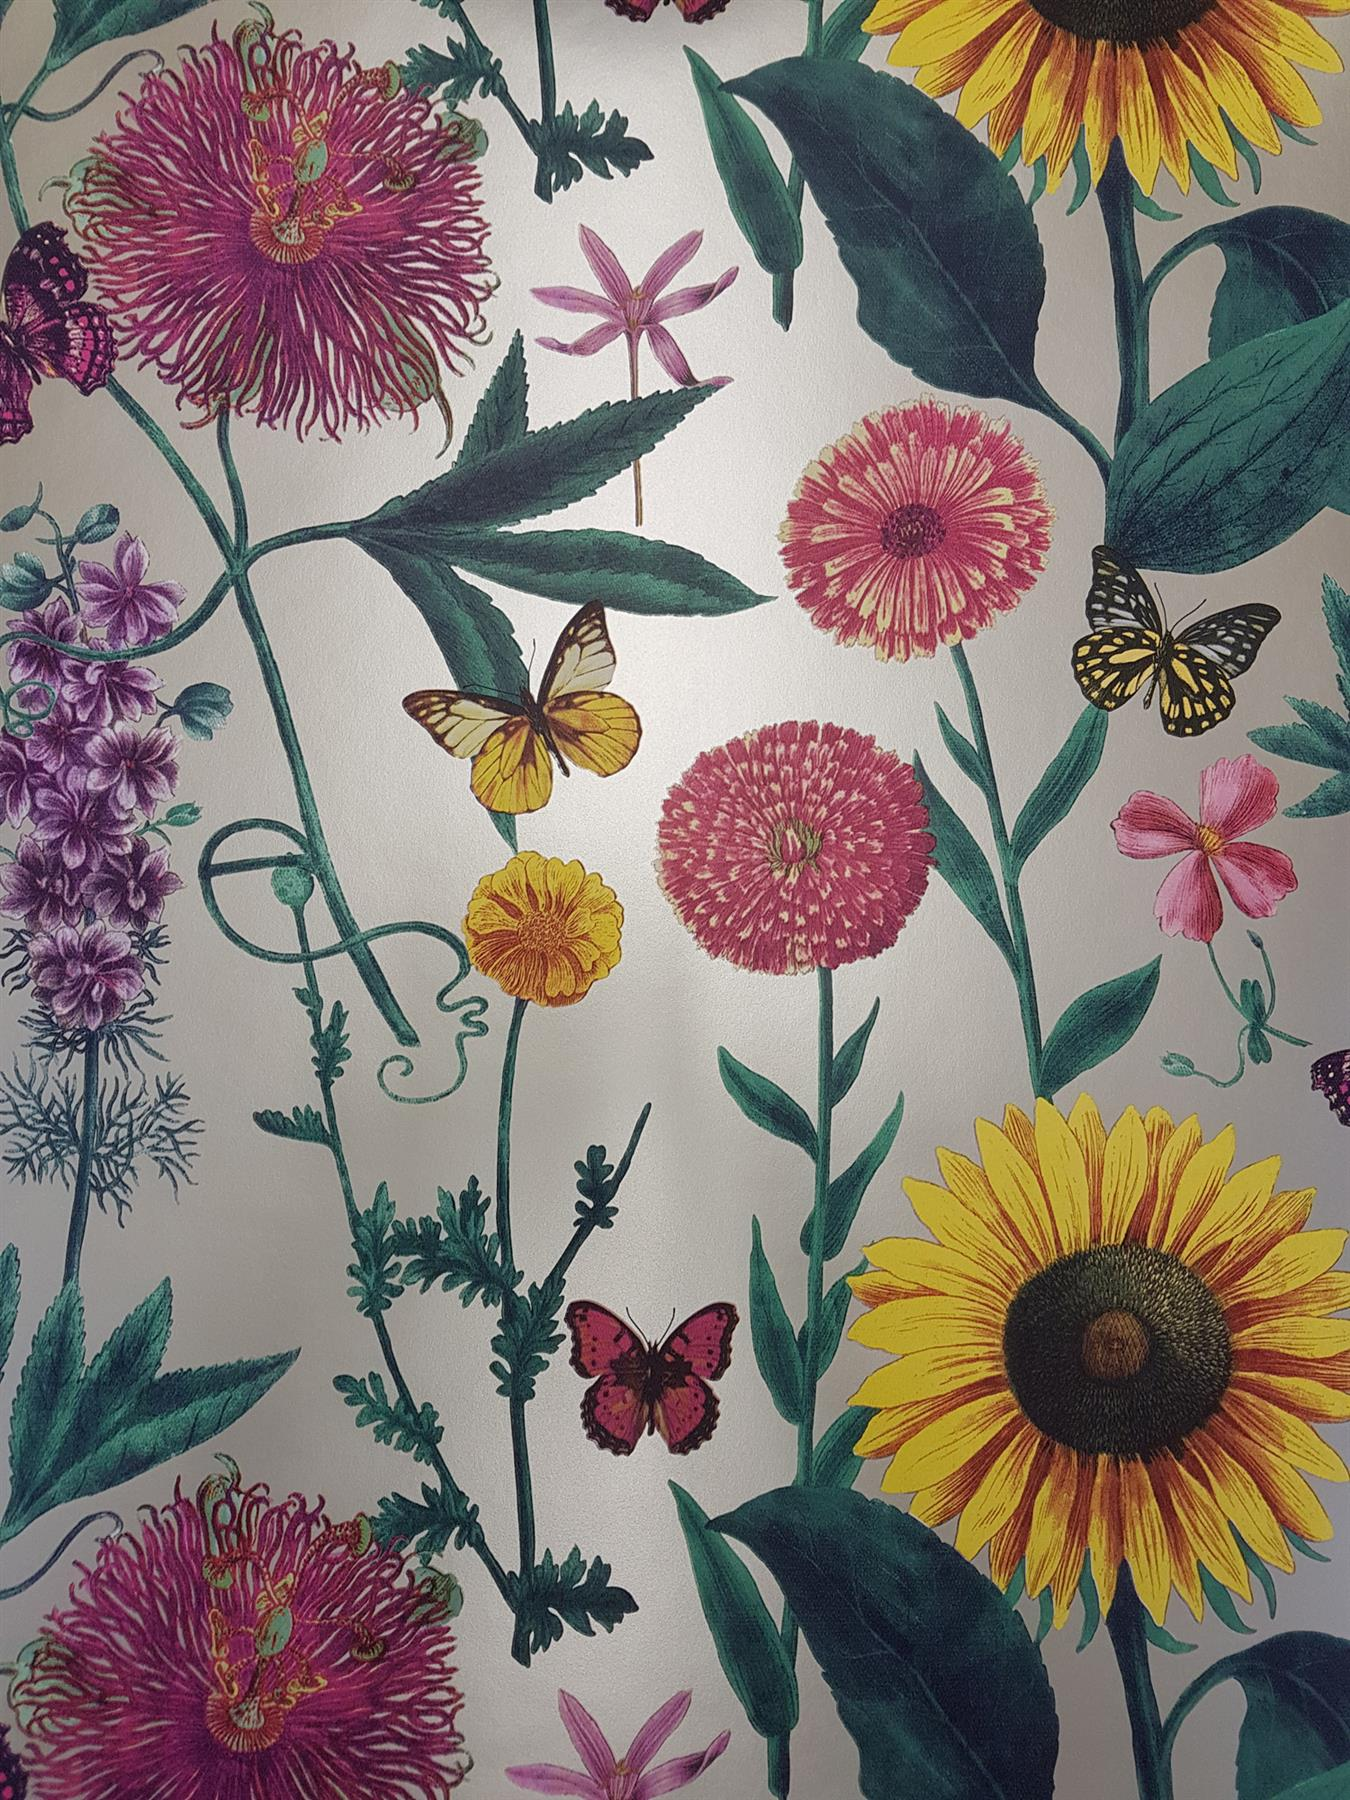 Summer Garden Flower Floral Wallpaper Metallic Sunflower Butterfly